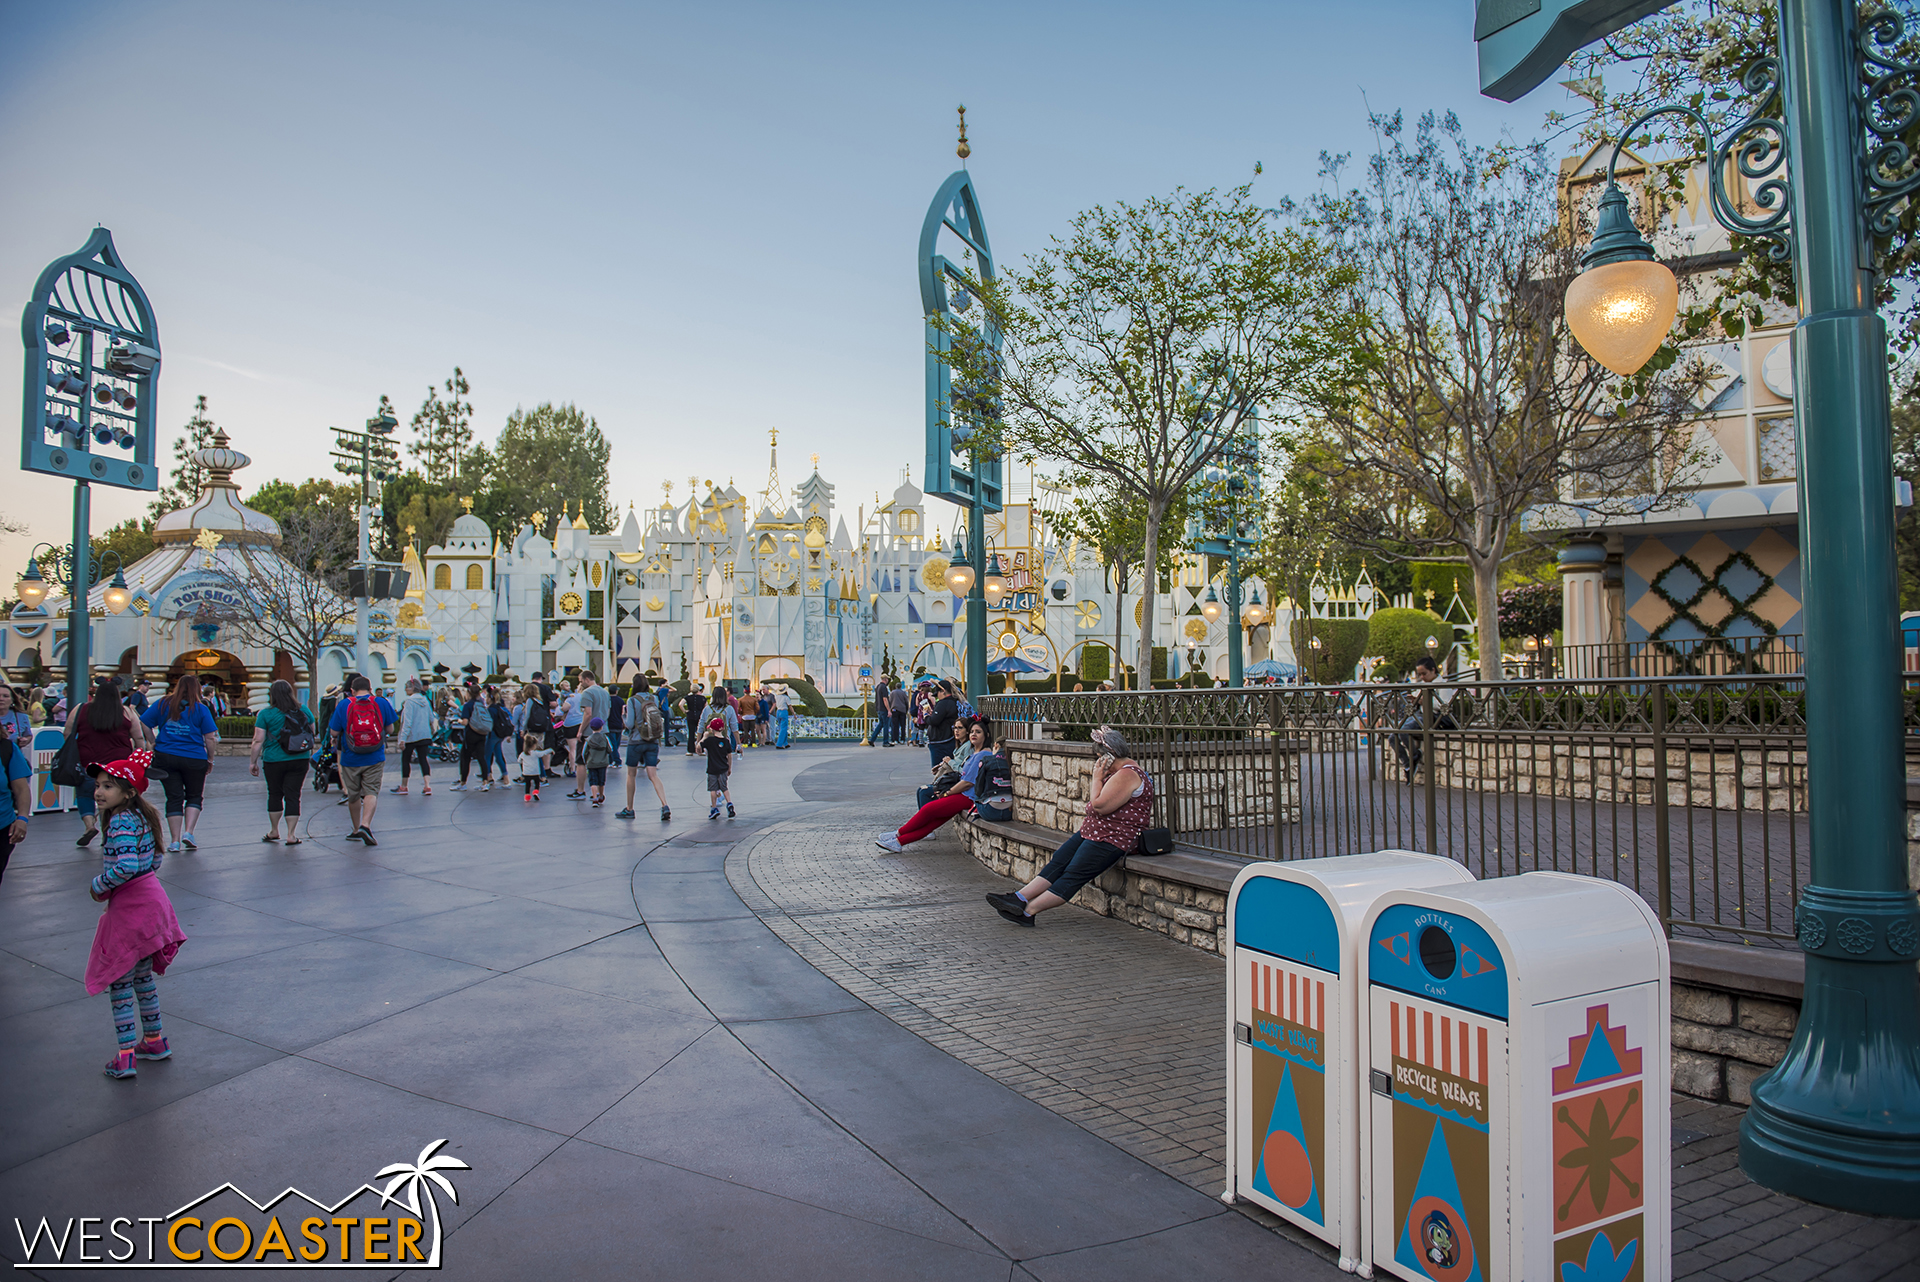 Just in time for parade season, this area is now clear!